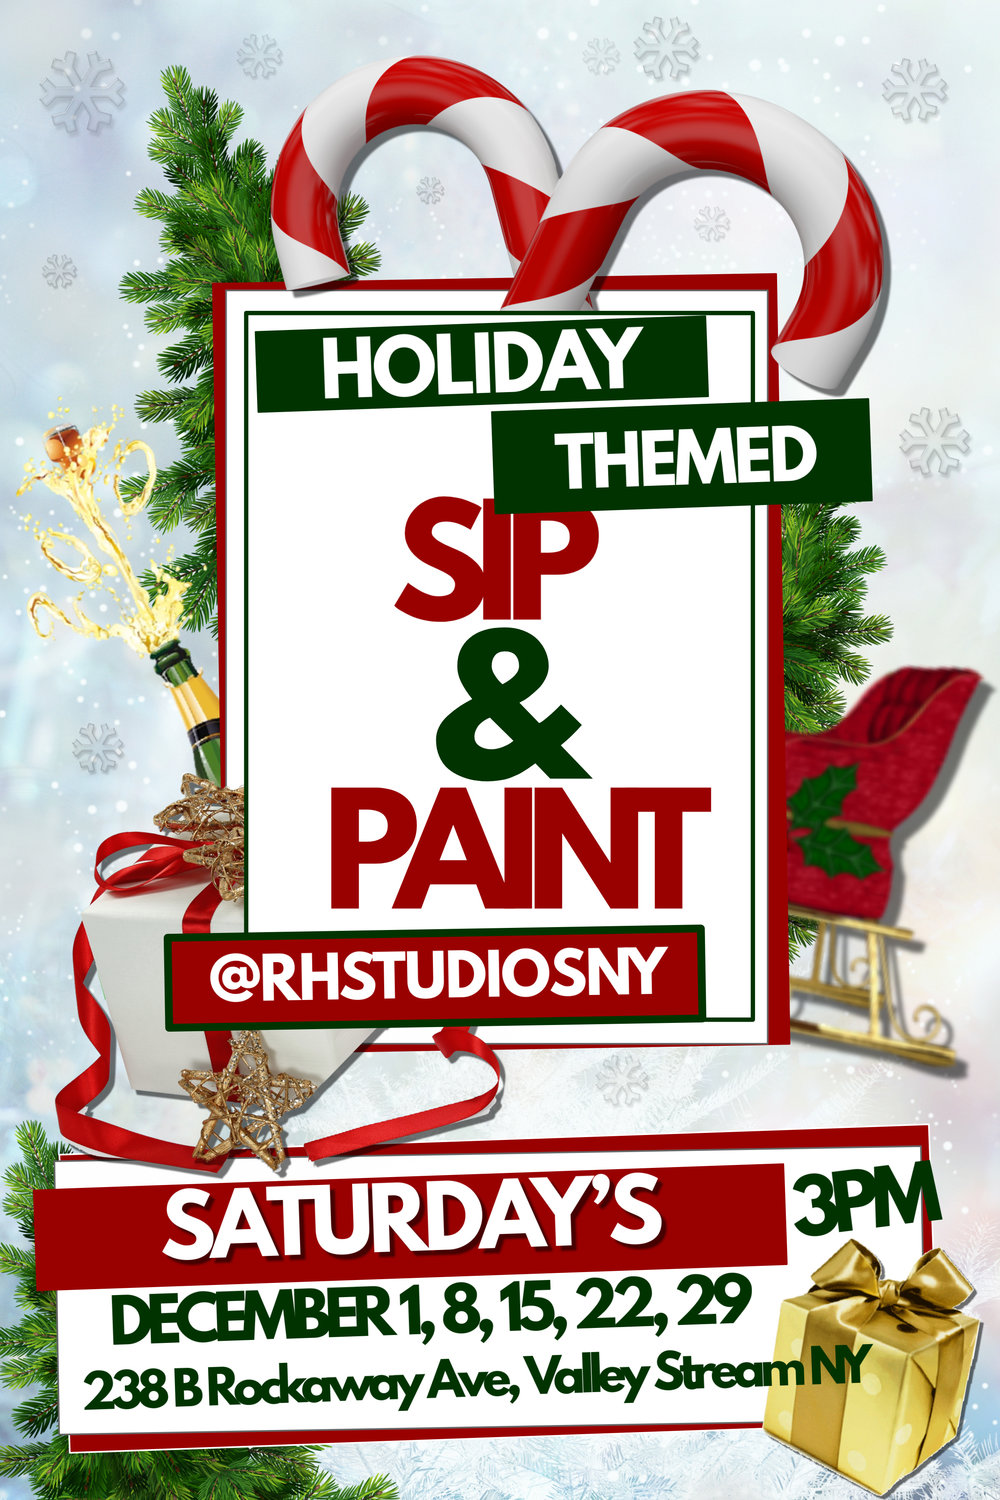 Every Saturday In December! - Come Celebrate the Holiday Season with Friends & Family